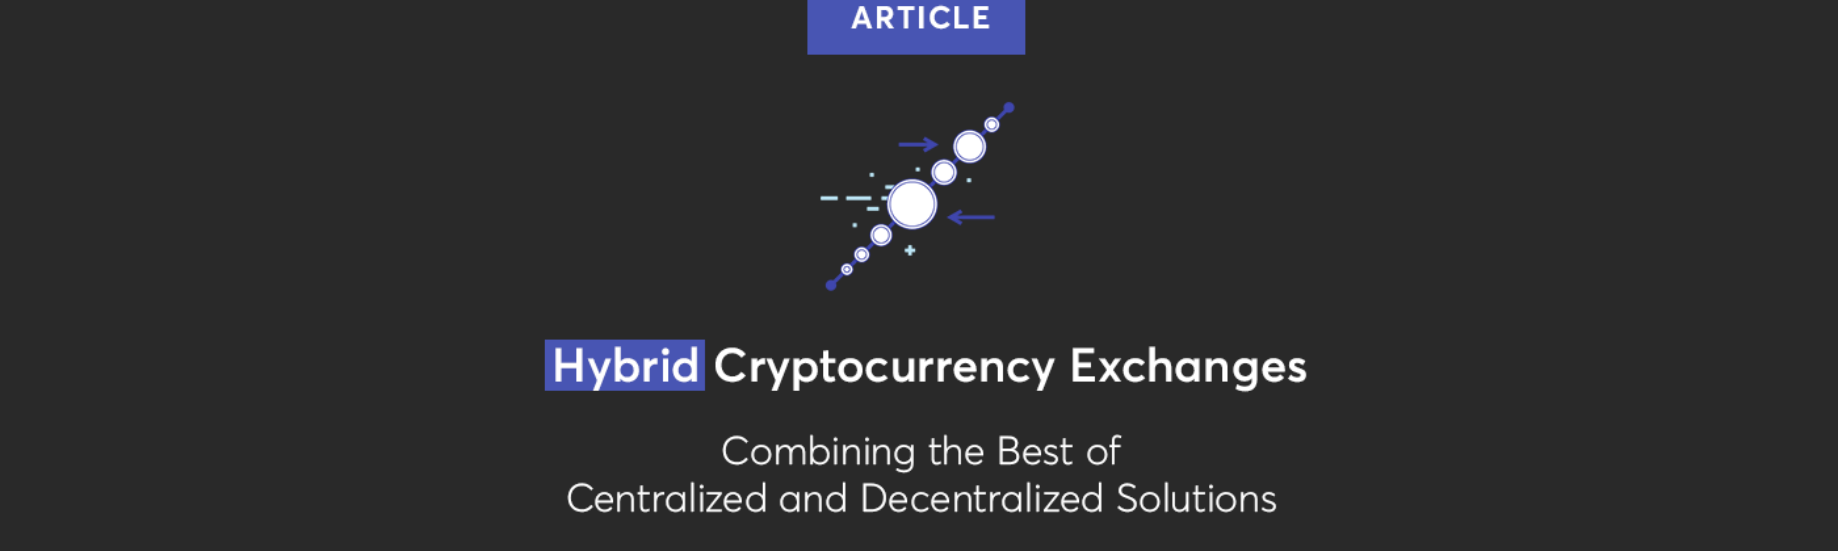 Which cryptocurrency exchanges allow orderbook snapshot